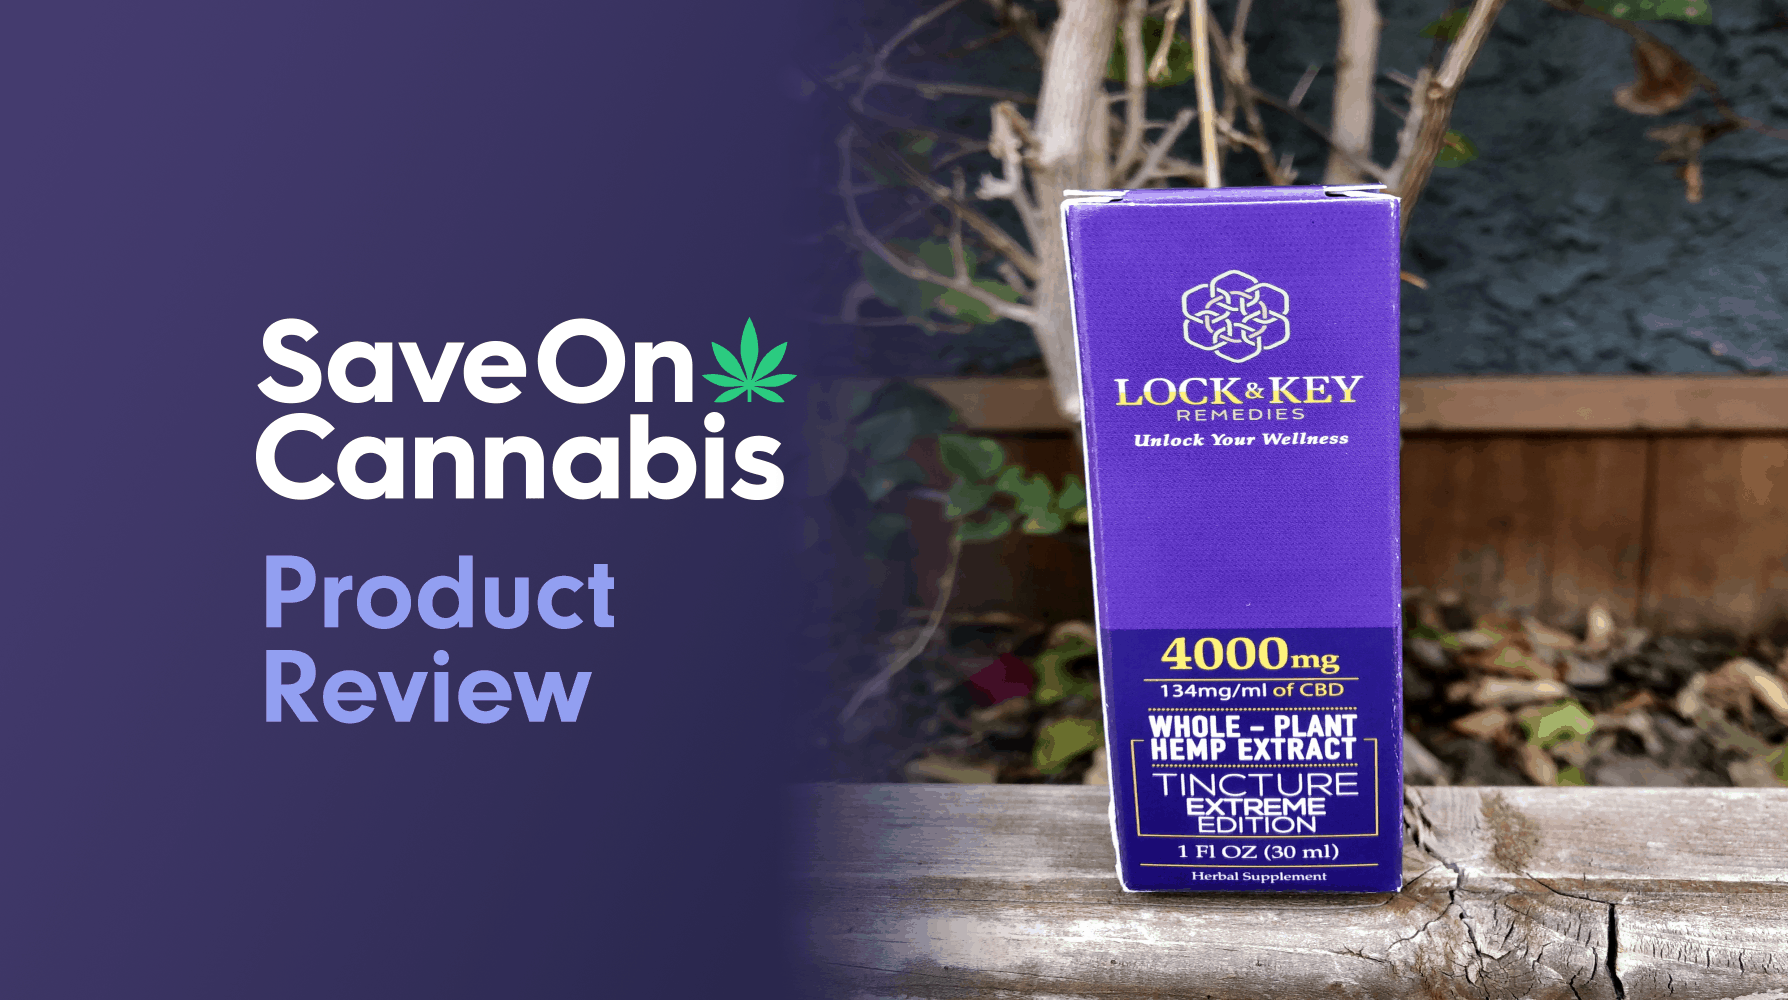 Lock & Key Remedies Extreme Formulation Tincture 4000 Mg Save On Cannabis Review Website